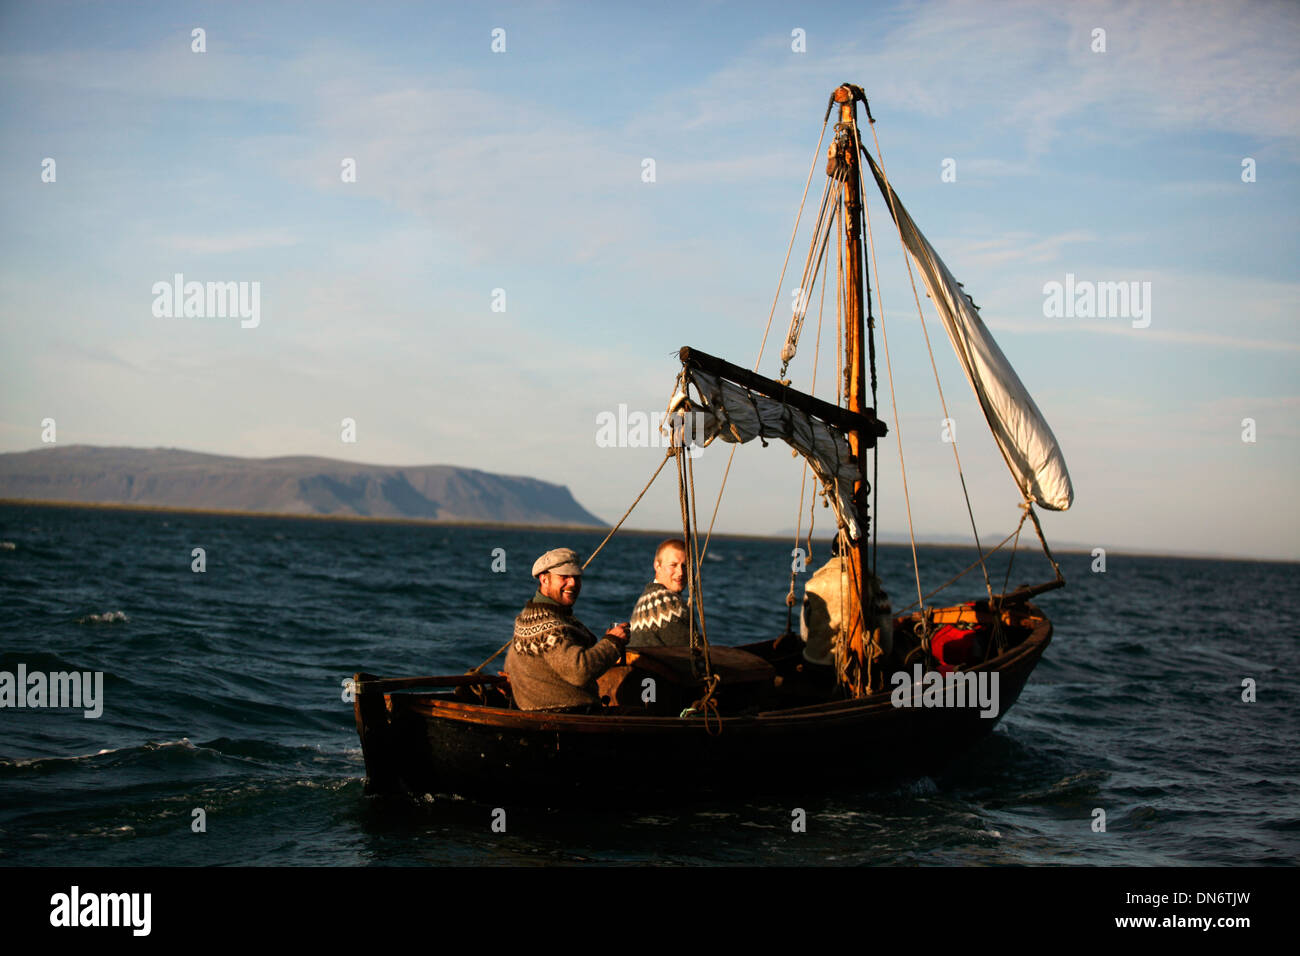 Sailing in the North Atlantic Ocean, Iceland. - Stock Image